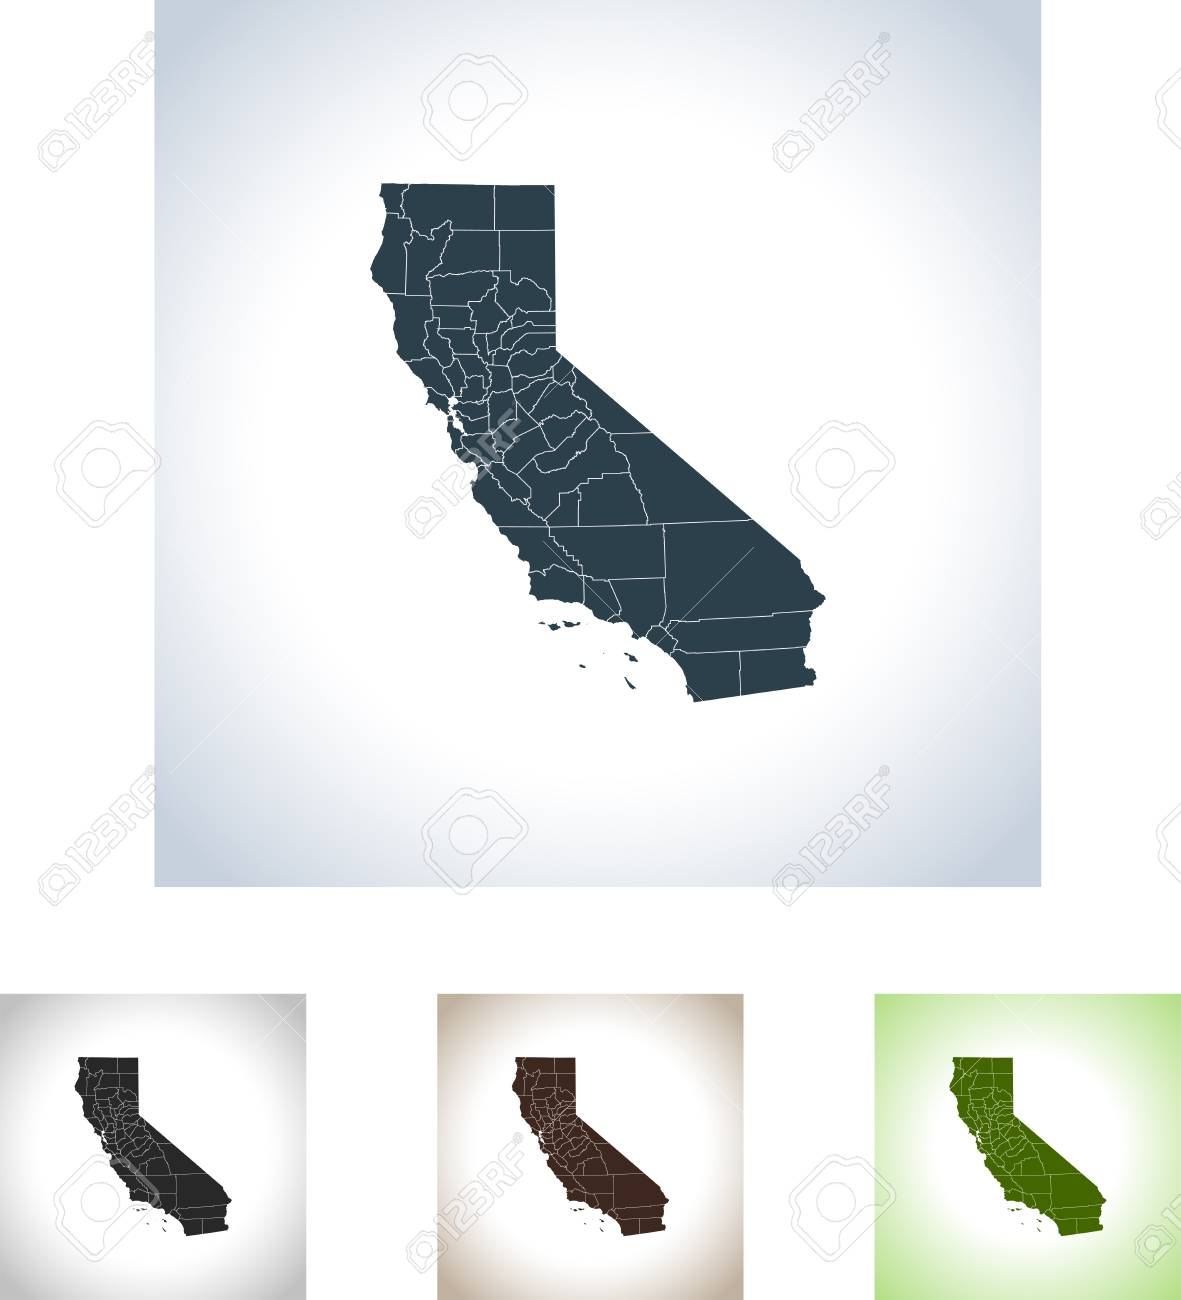 California Map Icon.Map Of California Icon Royalty Free Cliparts Vectors And Stock